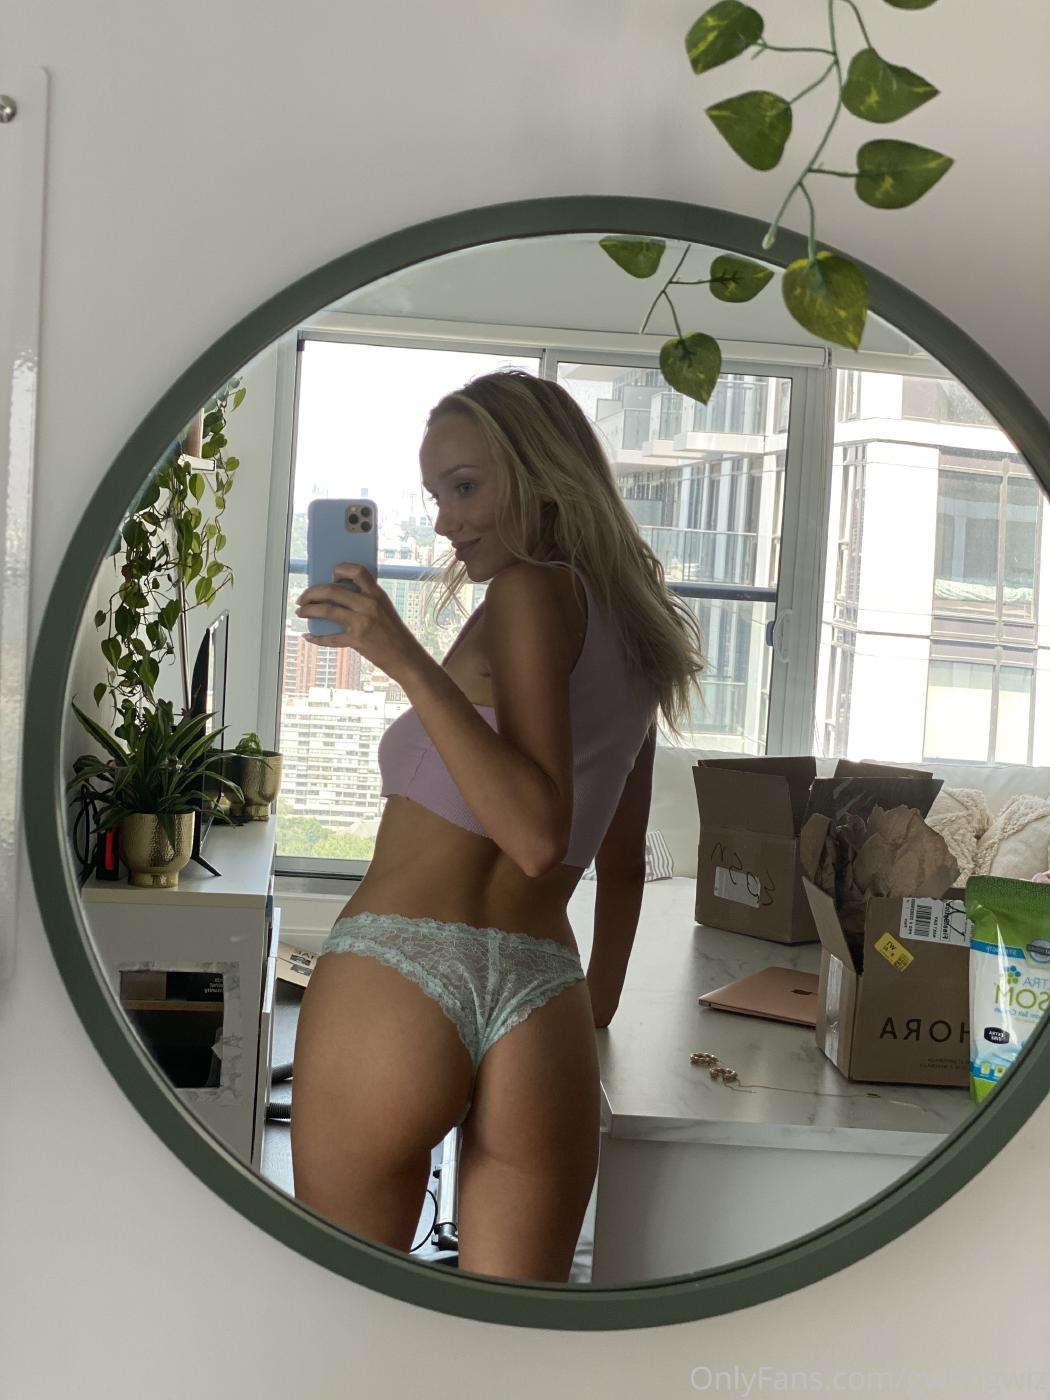 Gwengwiz Nude Onlyfans Collection Leaked 0023